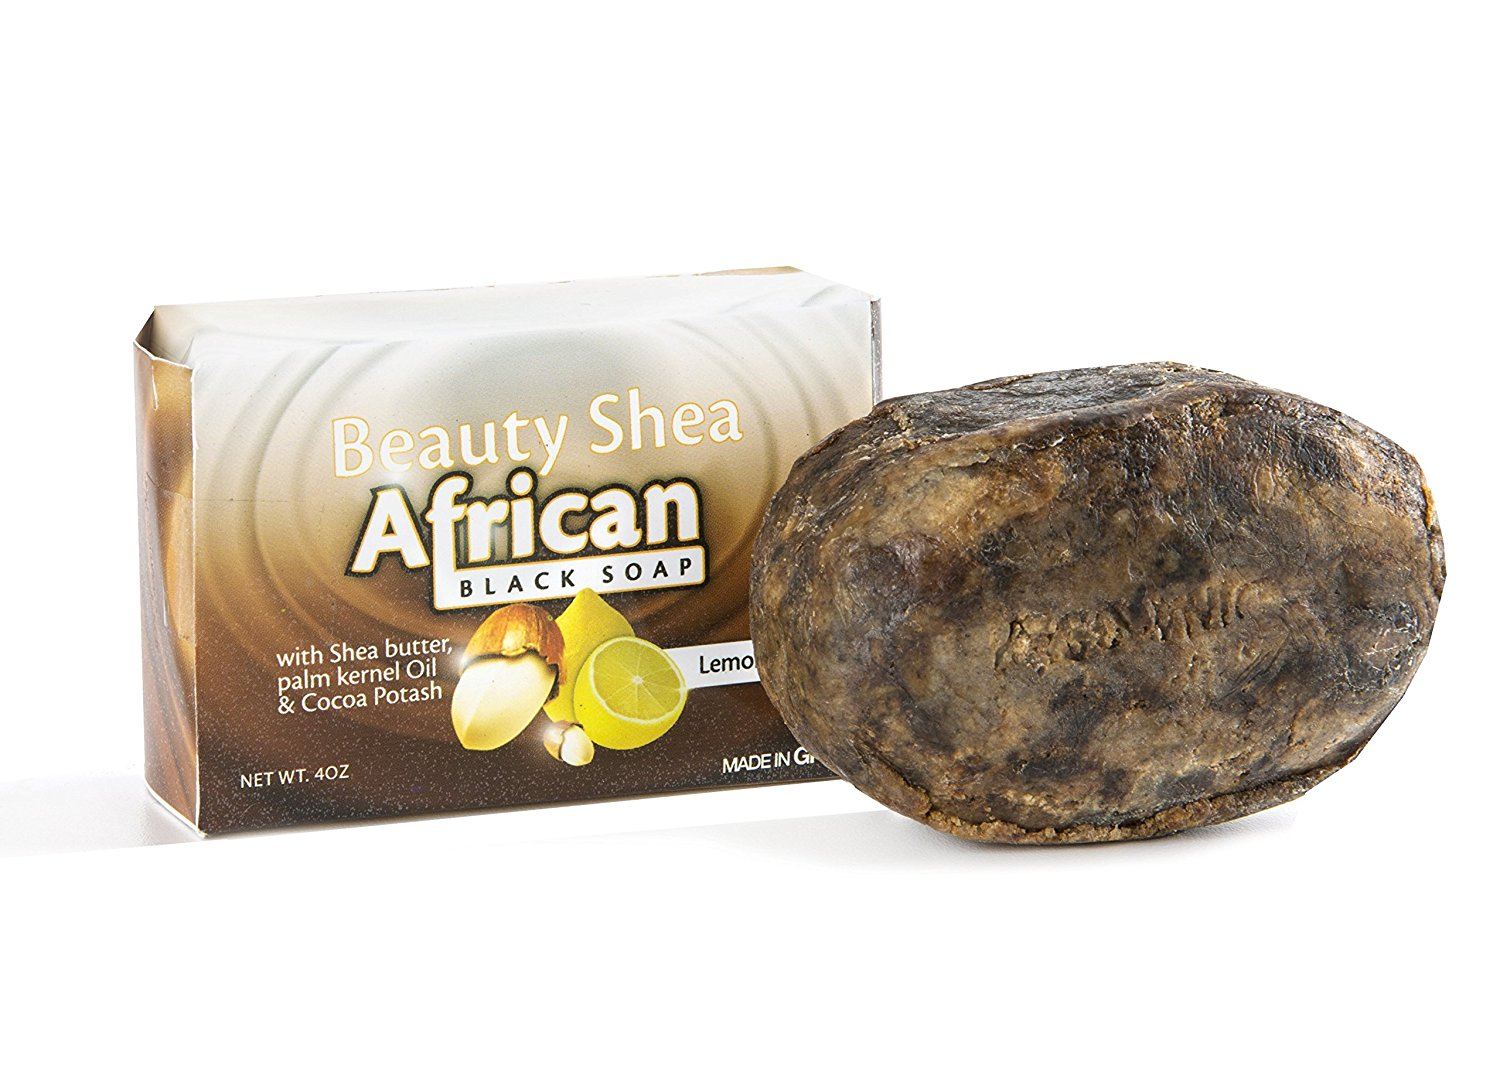 Beauty Shea – African Black Soap with Shea Butter, Palm Kernel Oil, and Cocoa Potash – Fragrant, 4oz.